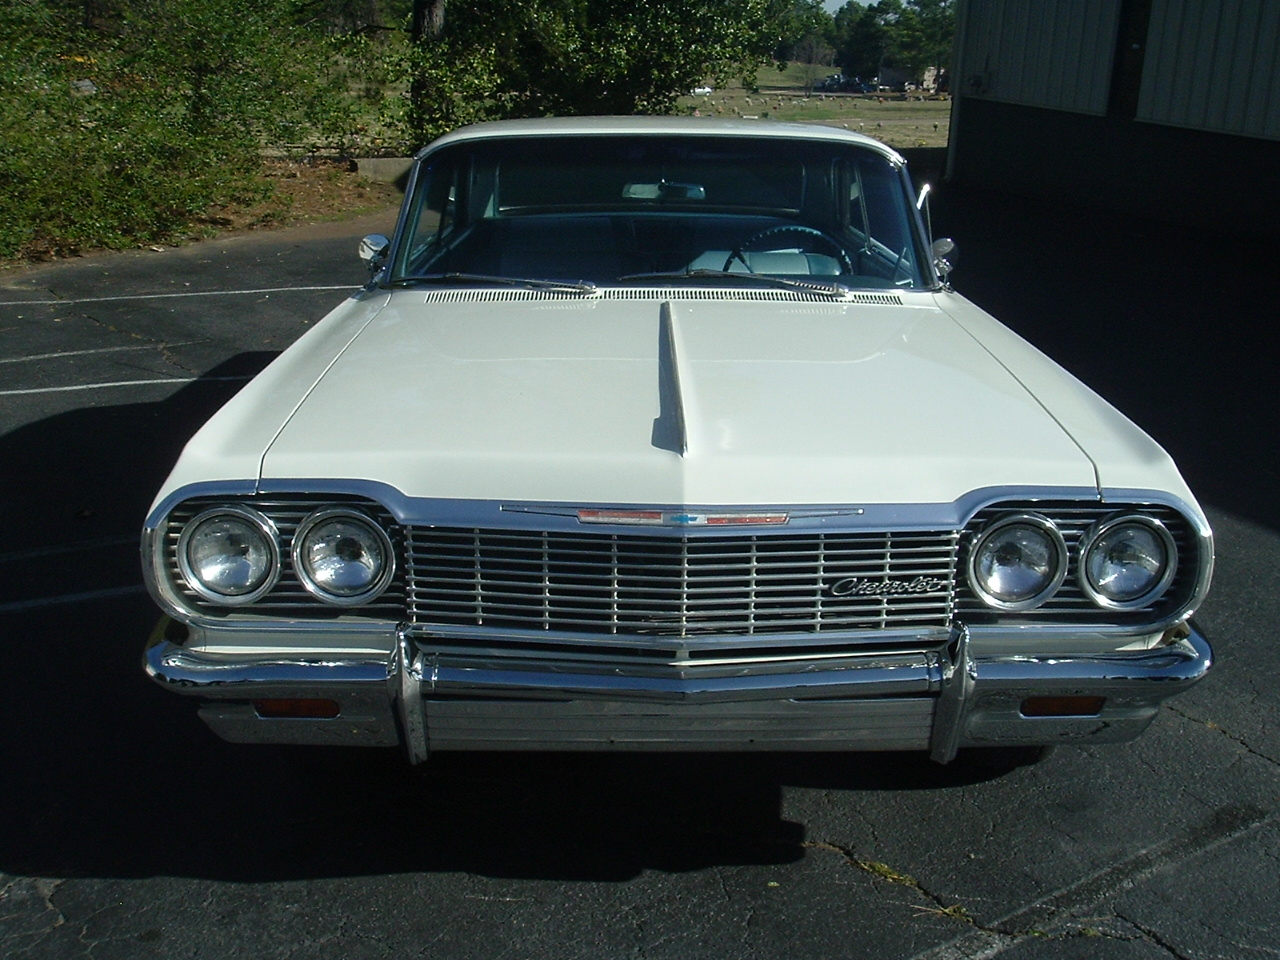 1964 Impala Two Door Hardtop White (8)